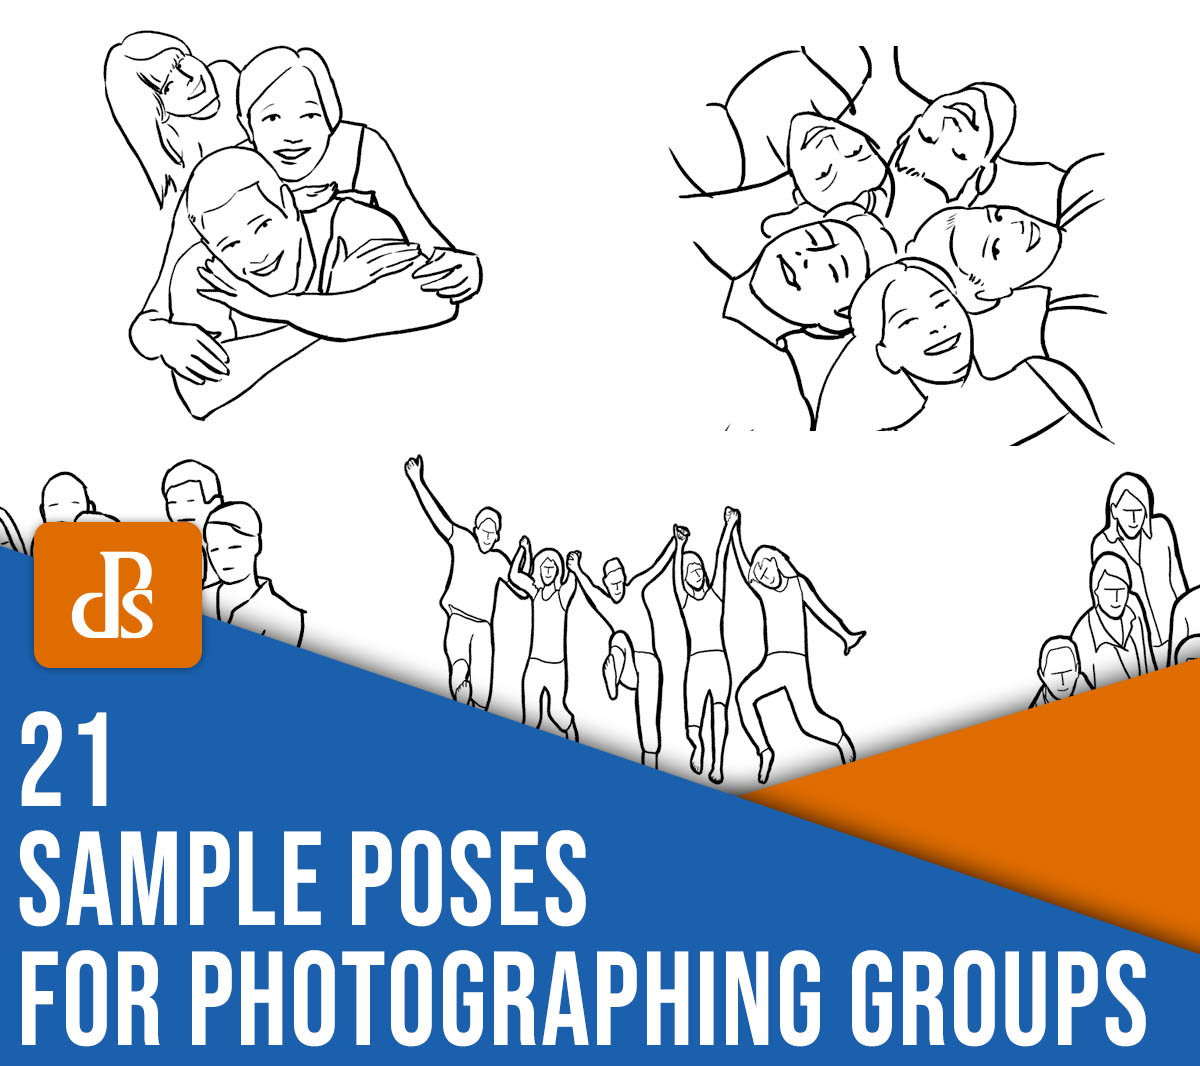 21 sample poses for photographing groups